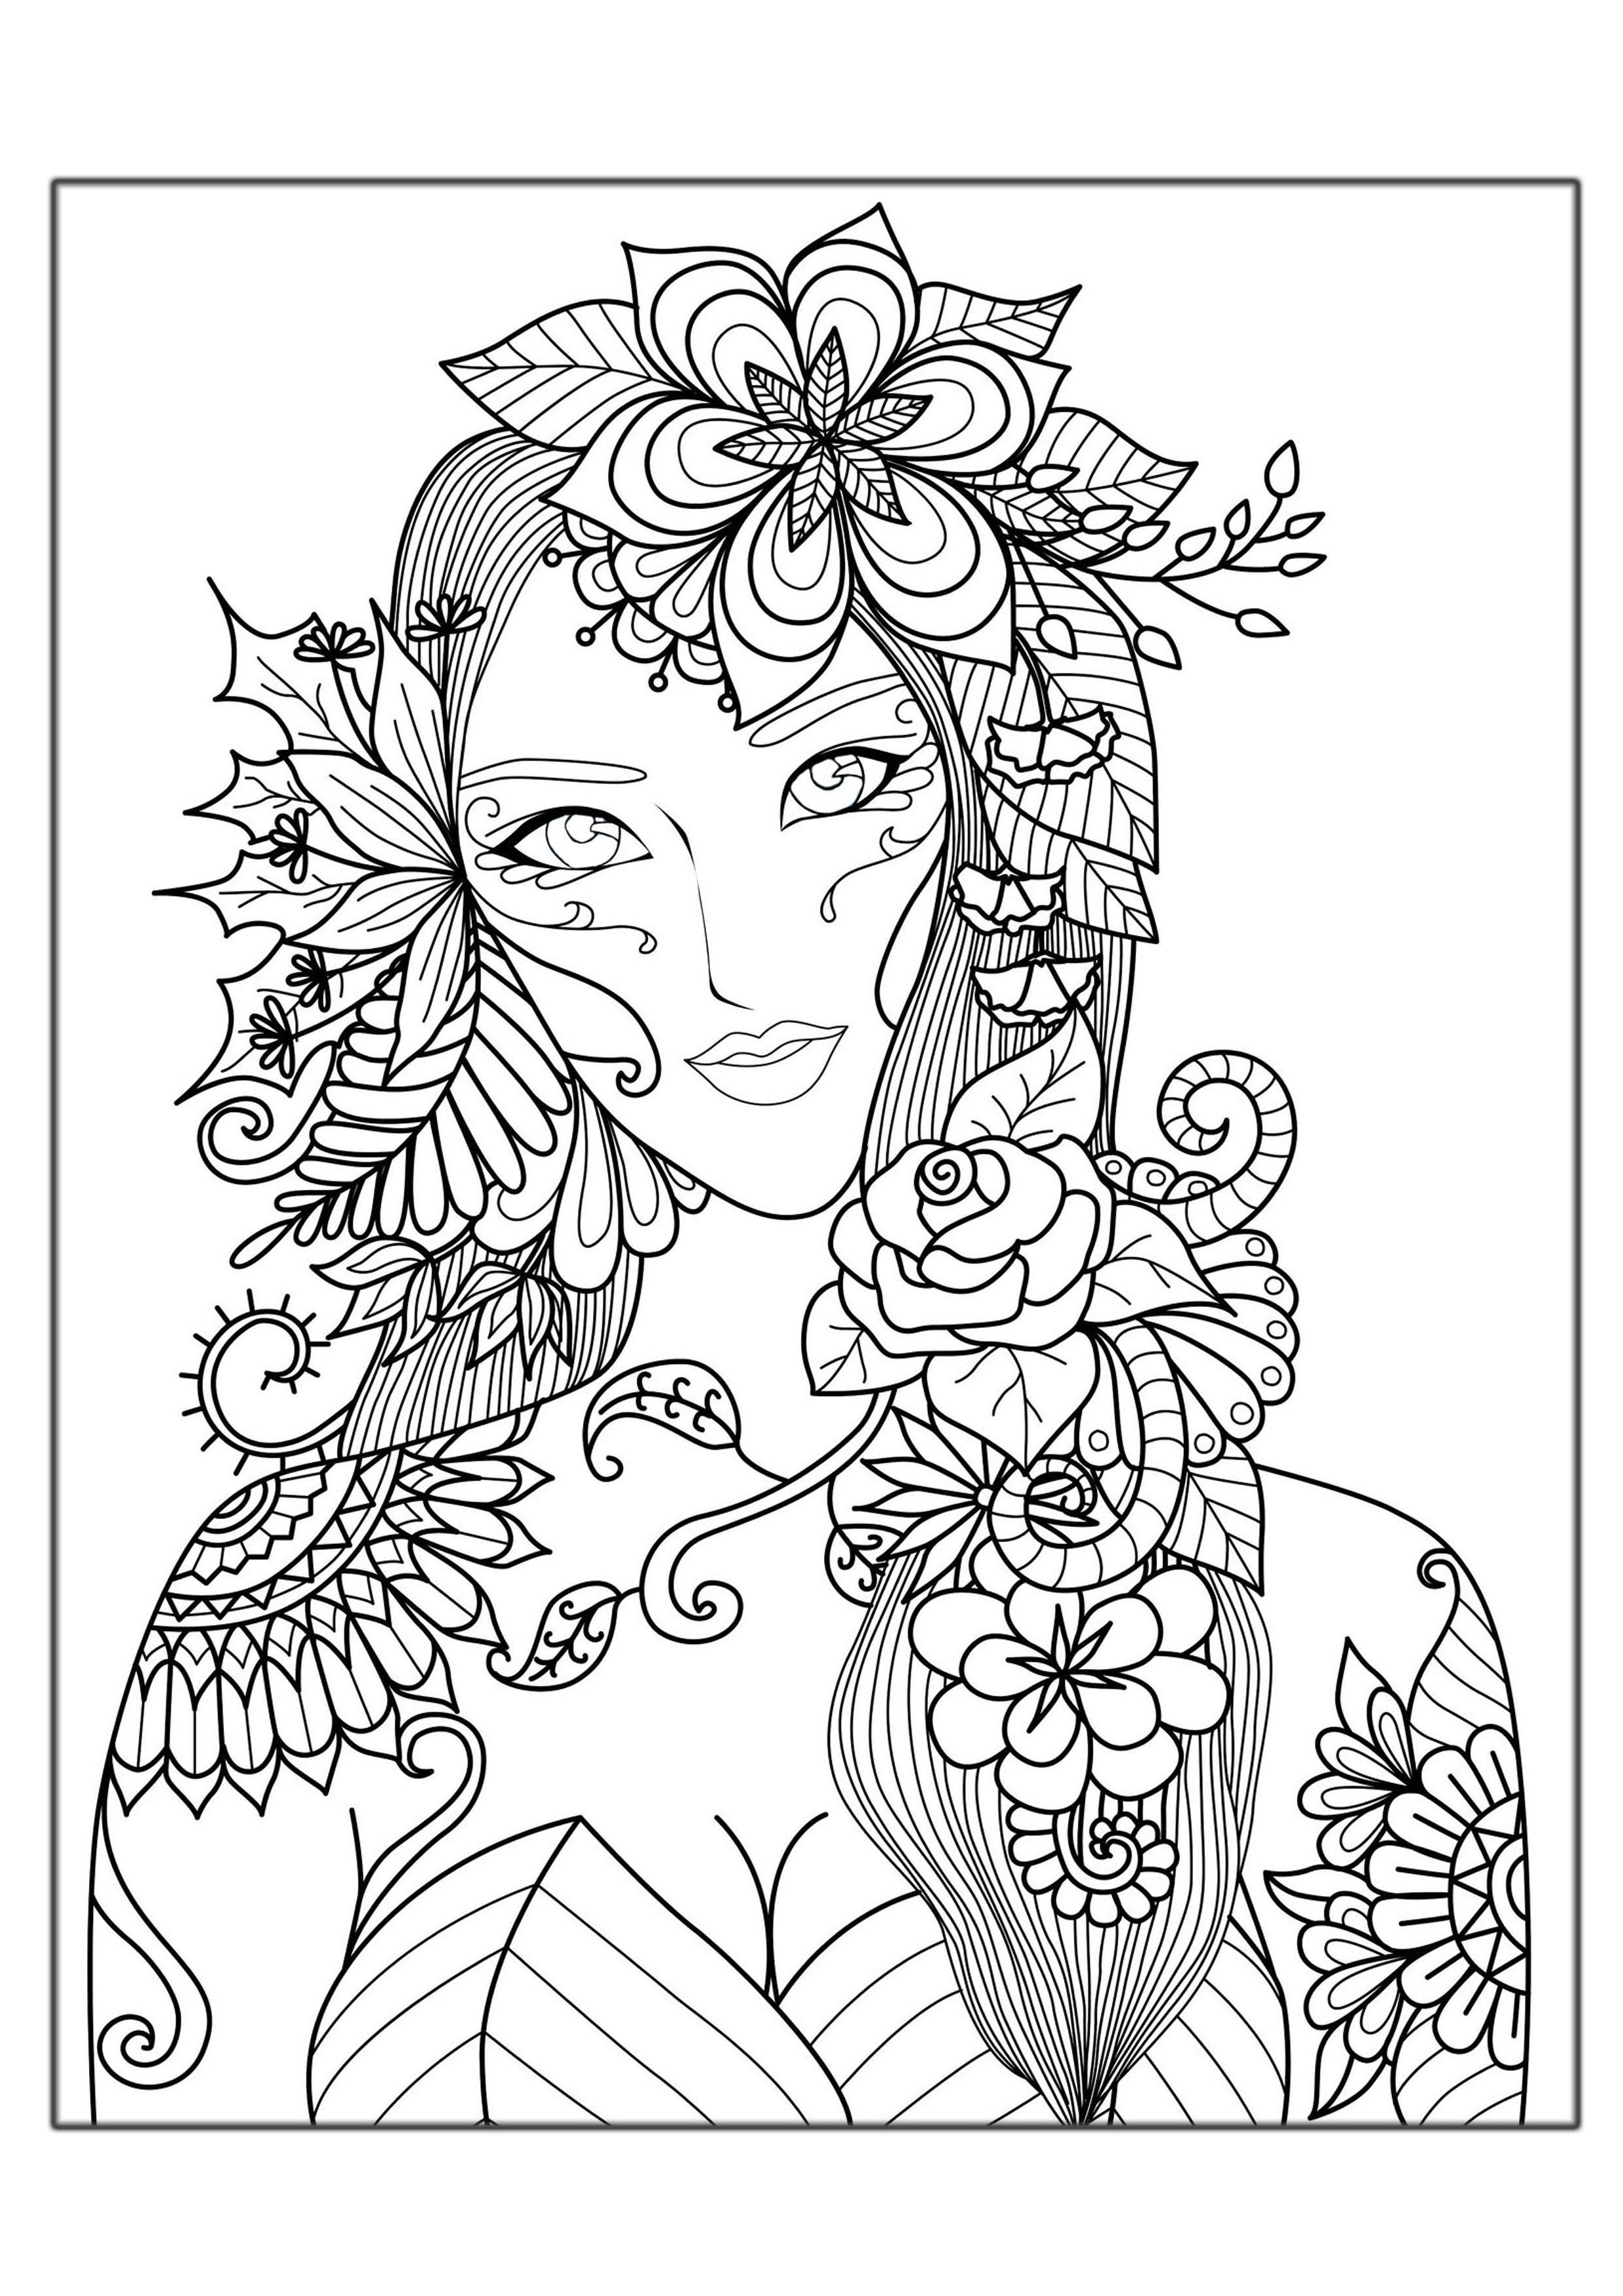 Coloring Book For Adults  Hard Coloring Pages for Adults Best Coloring Pages For Kids